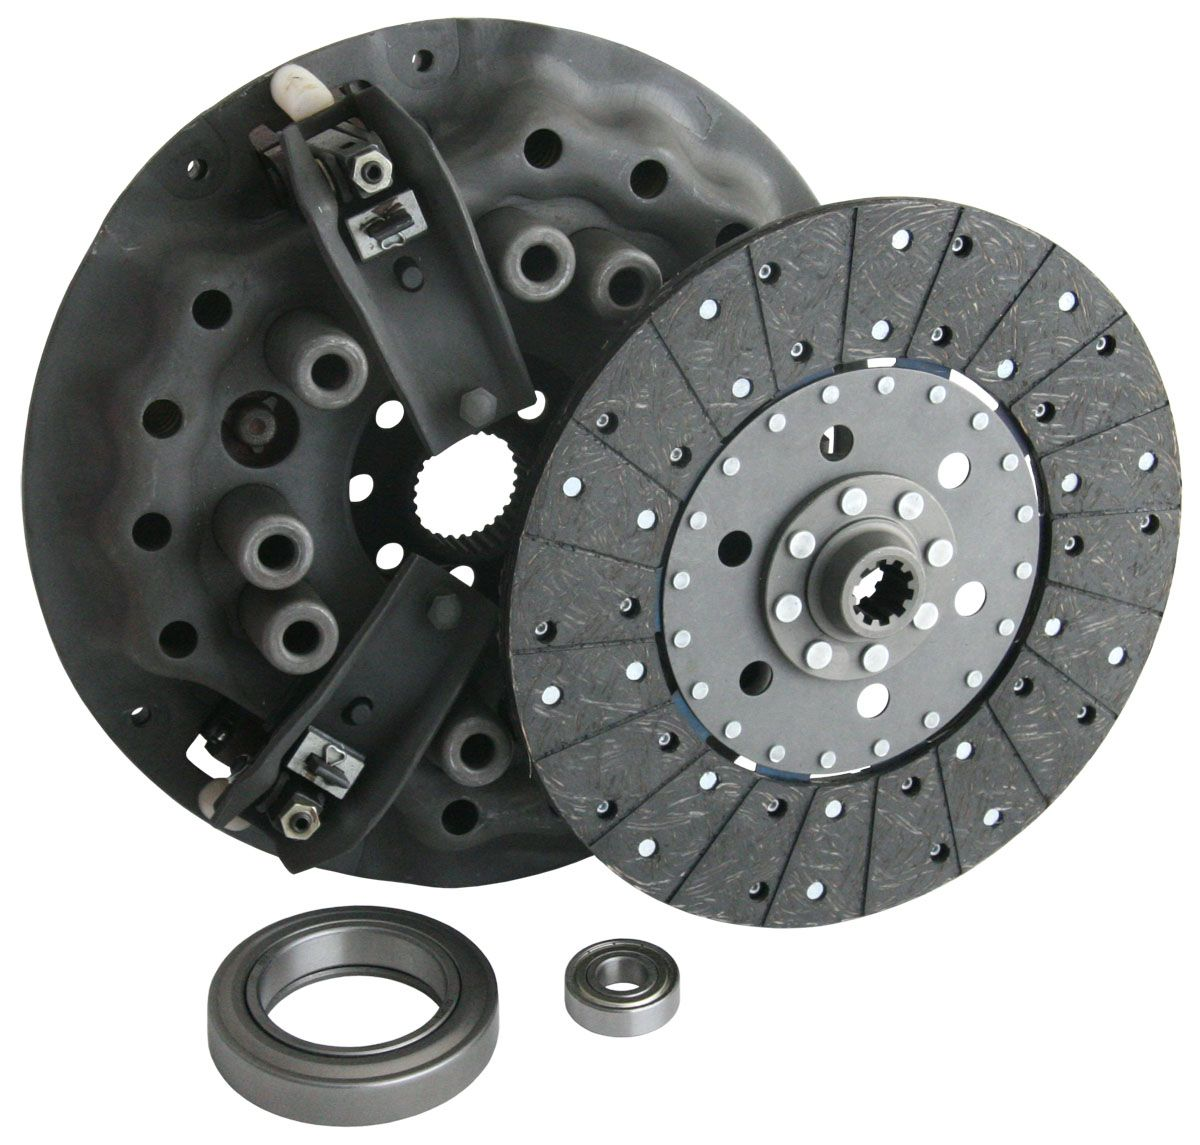 EMMARK NEW HOLLAND CLUTCH KIT DUAL 9/11(INCH) 10 SPLINE - (957E7563B)